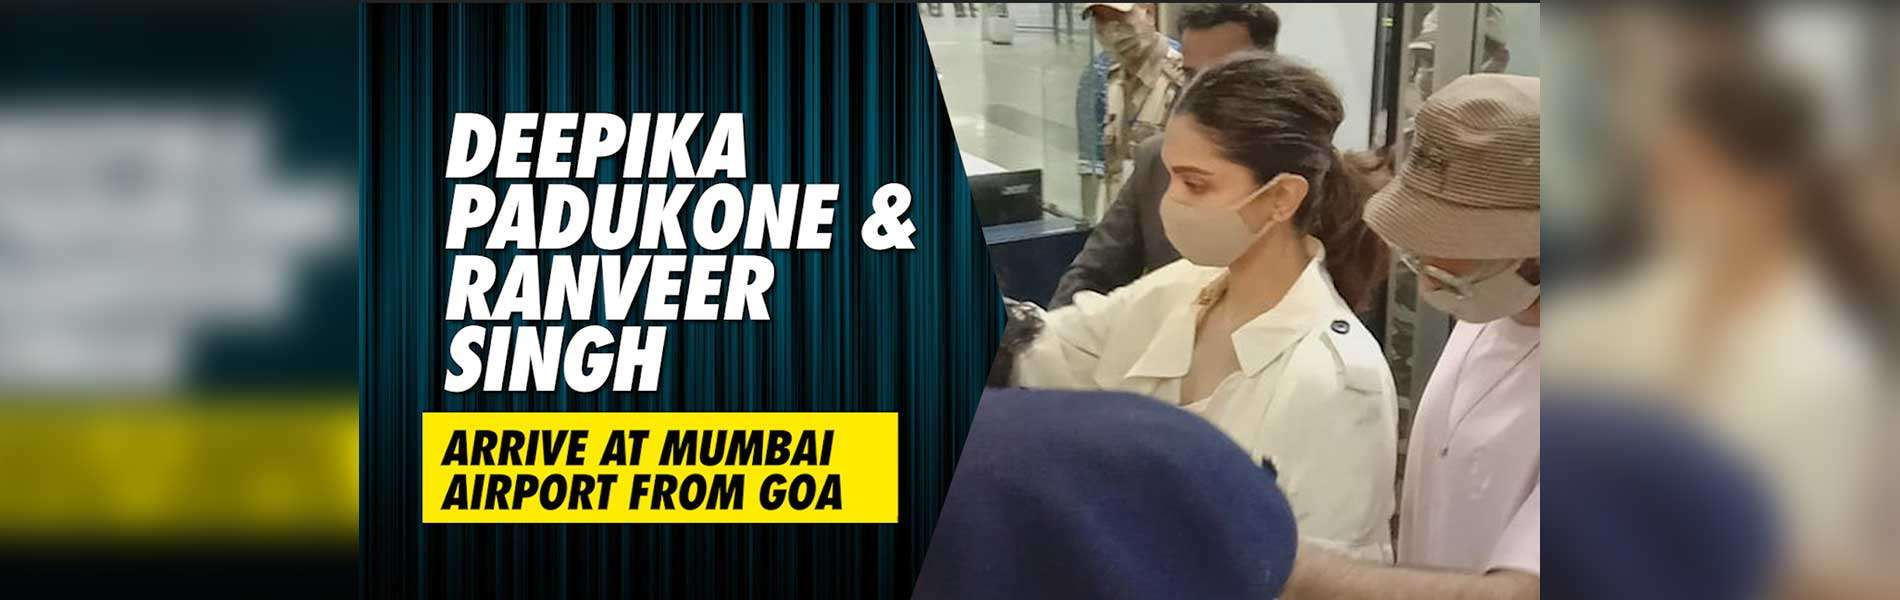 deepika-padukone-and-ranveer-singh-arrive-at-mumbai-airport-from-goa